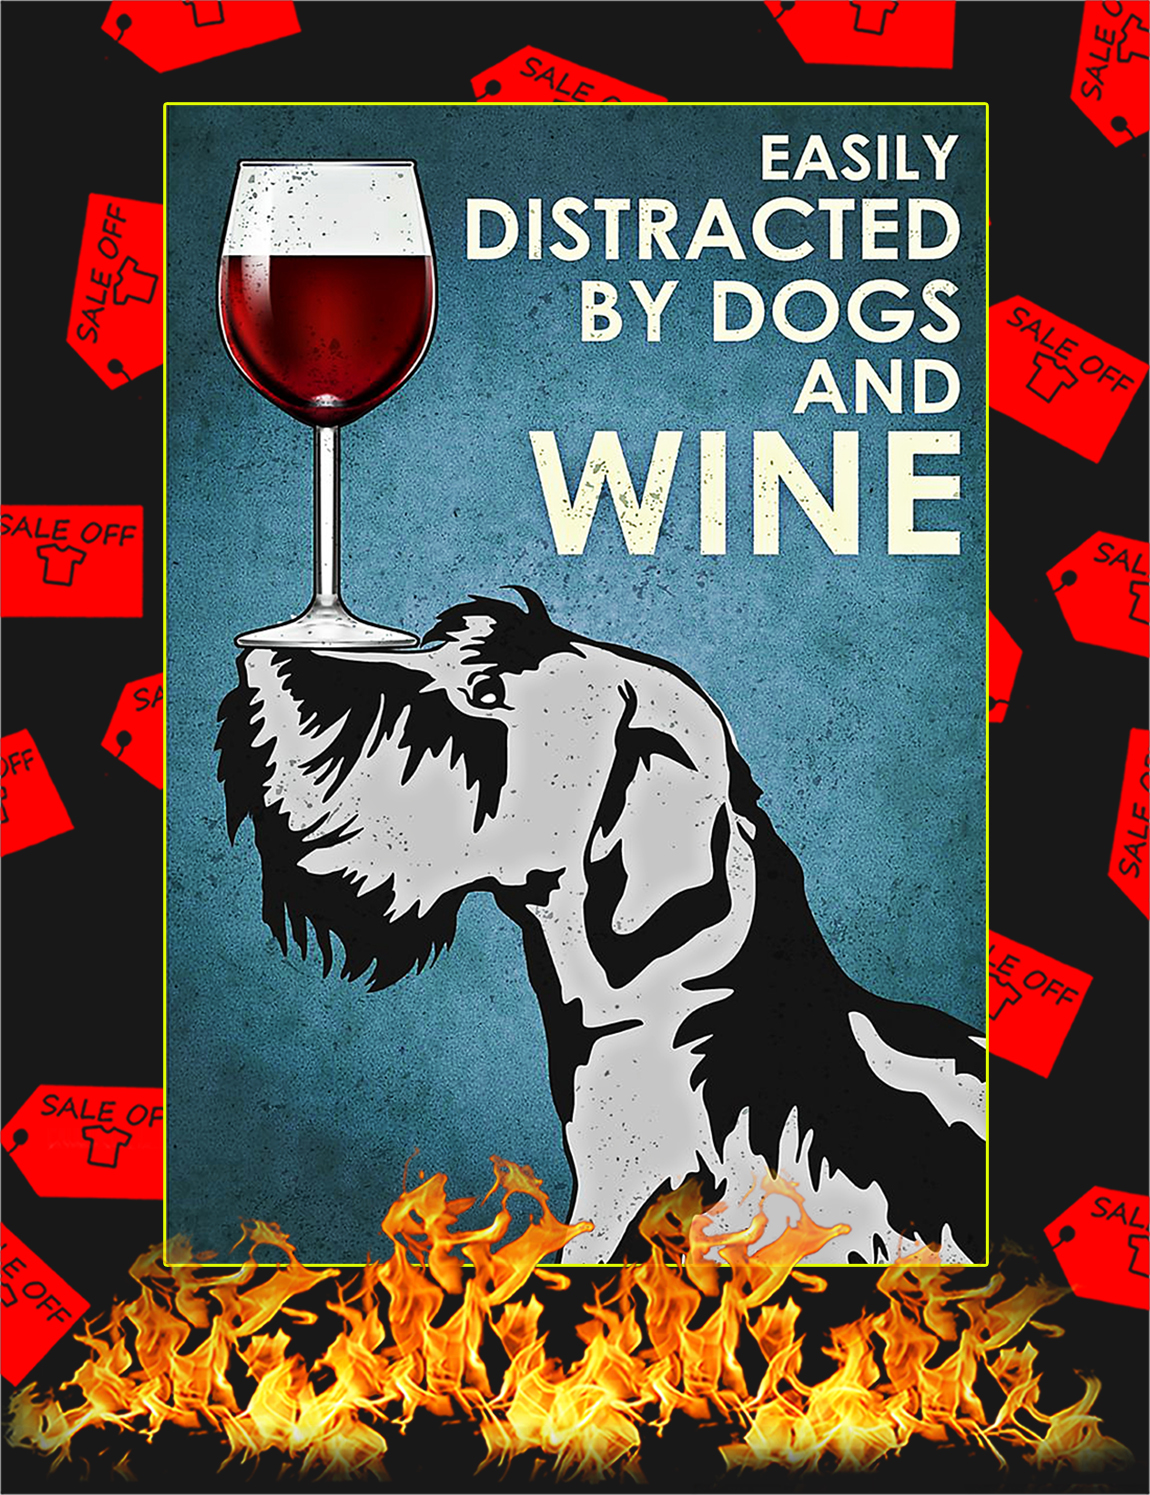 Miniature schnauzer Easily distracted by dogs and wine poster - A2